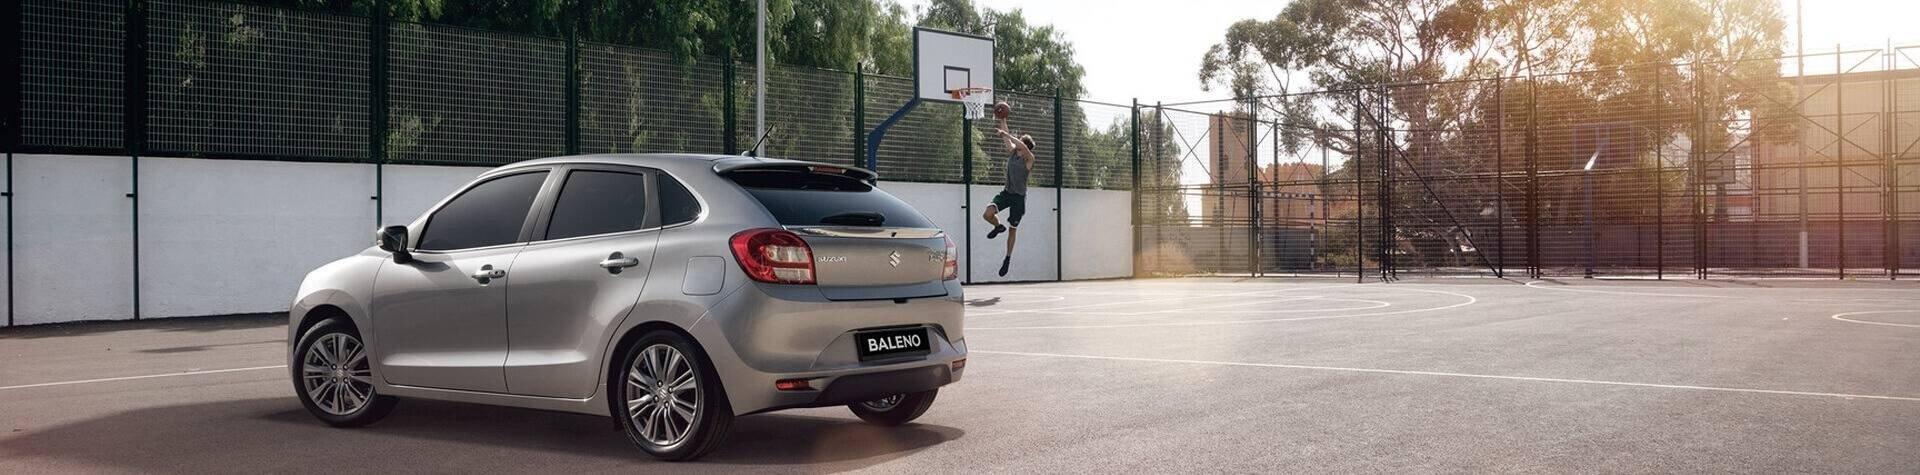 Suzuki Baleno in Geraldton Basketball Court